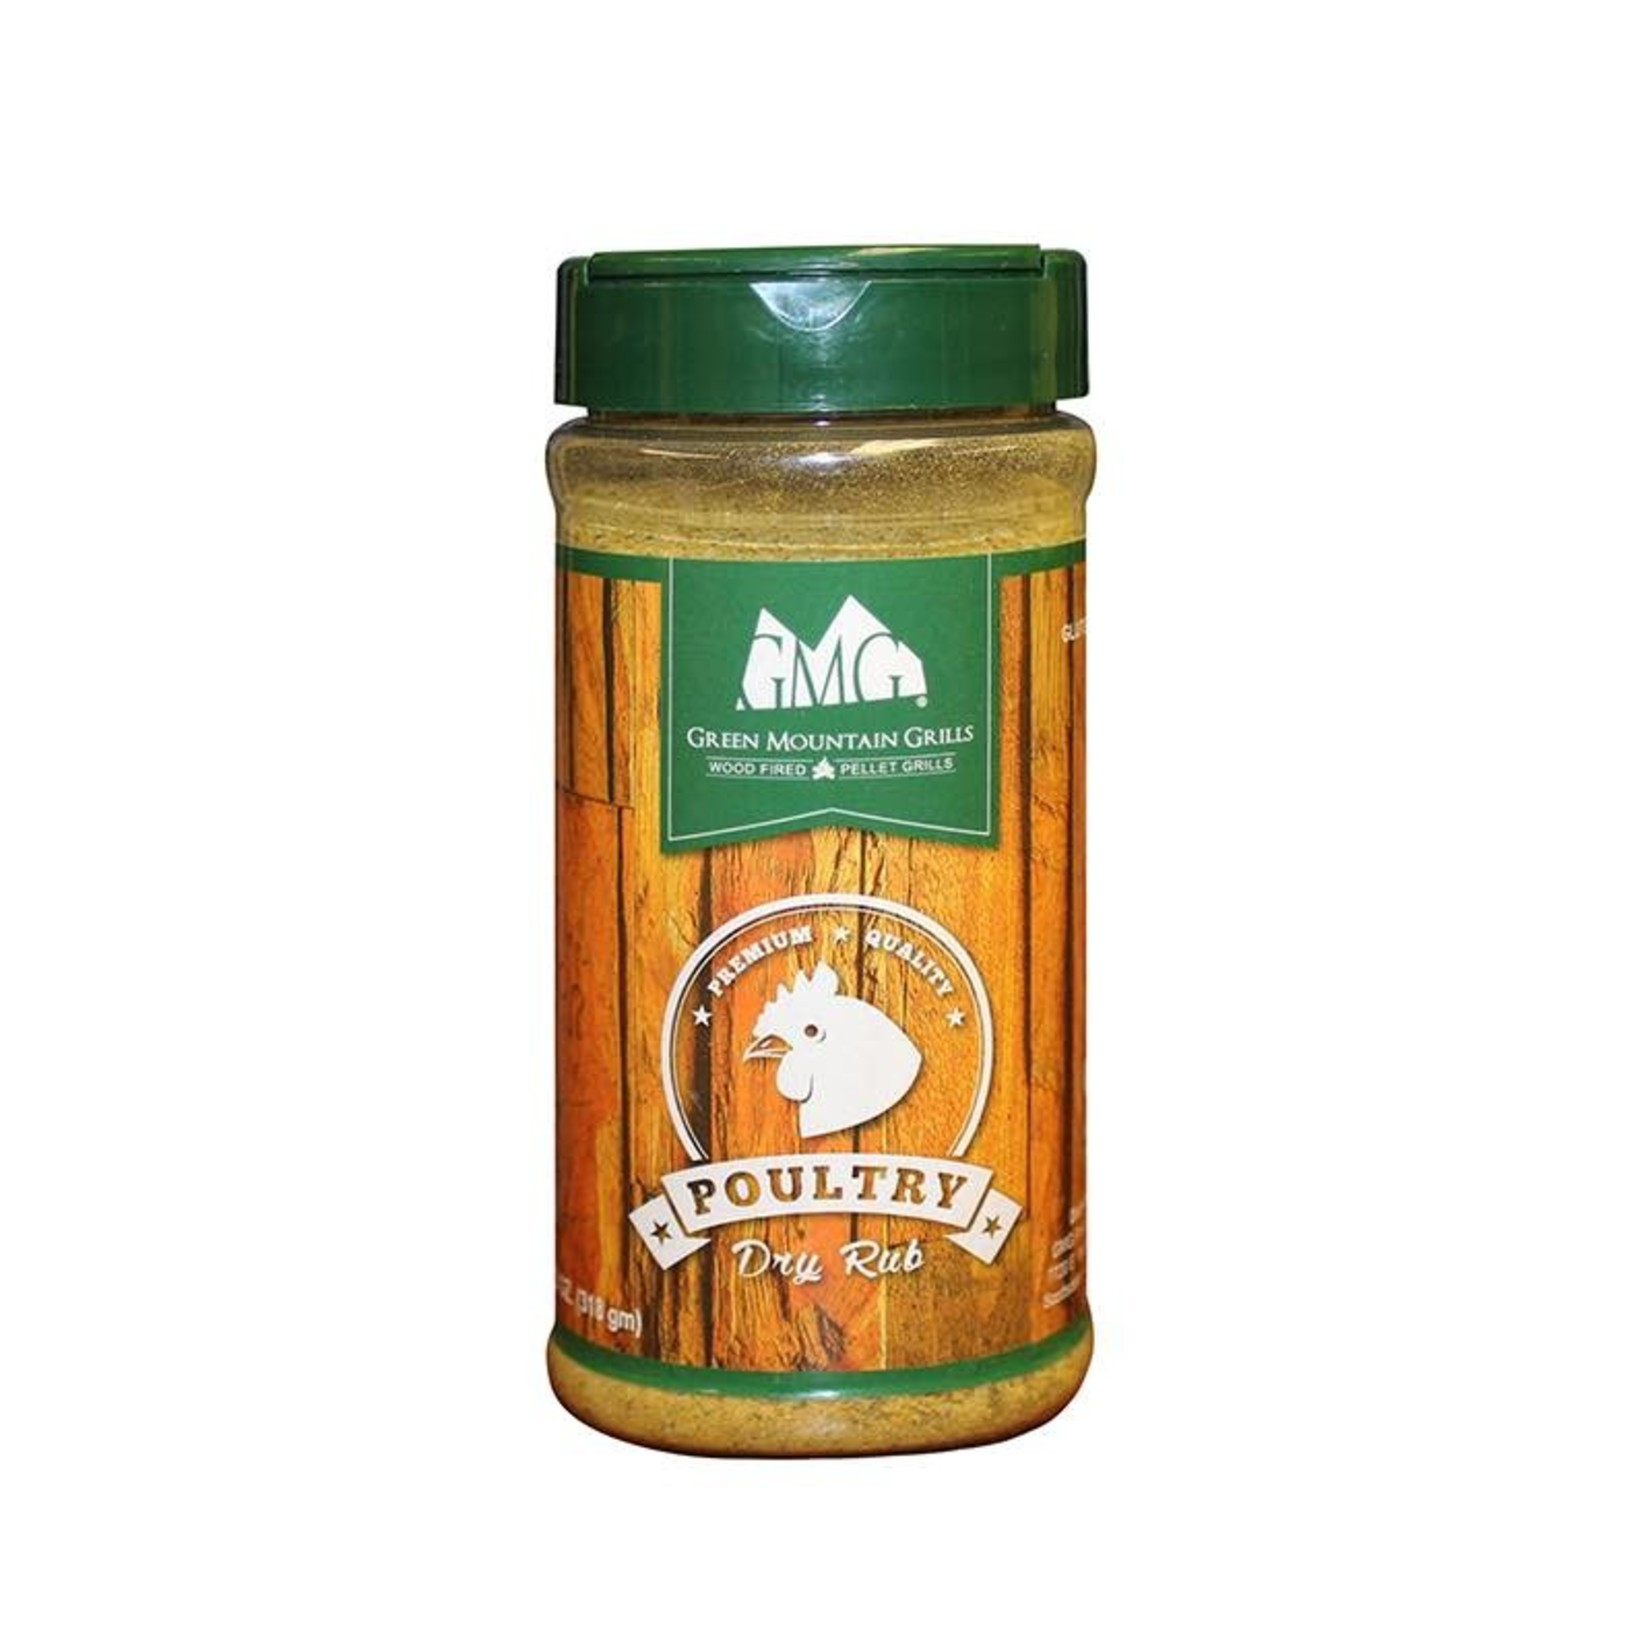 Green Mountain Grill GMG Poultry Rub